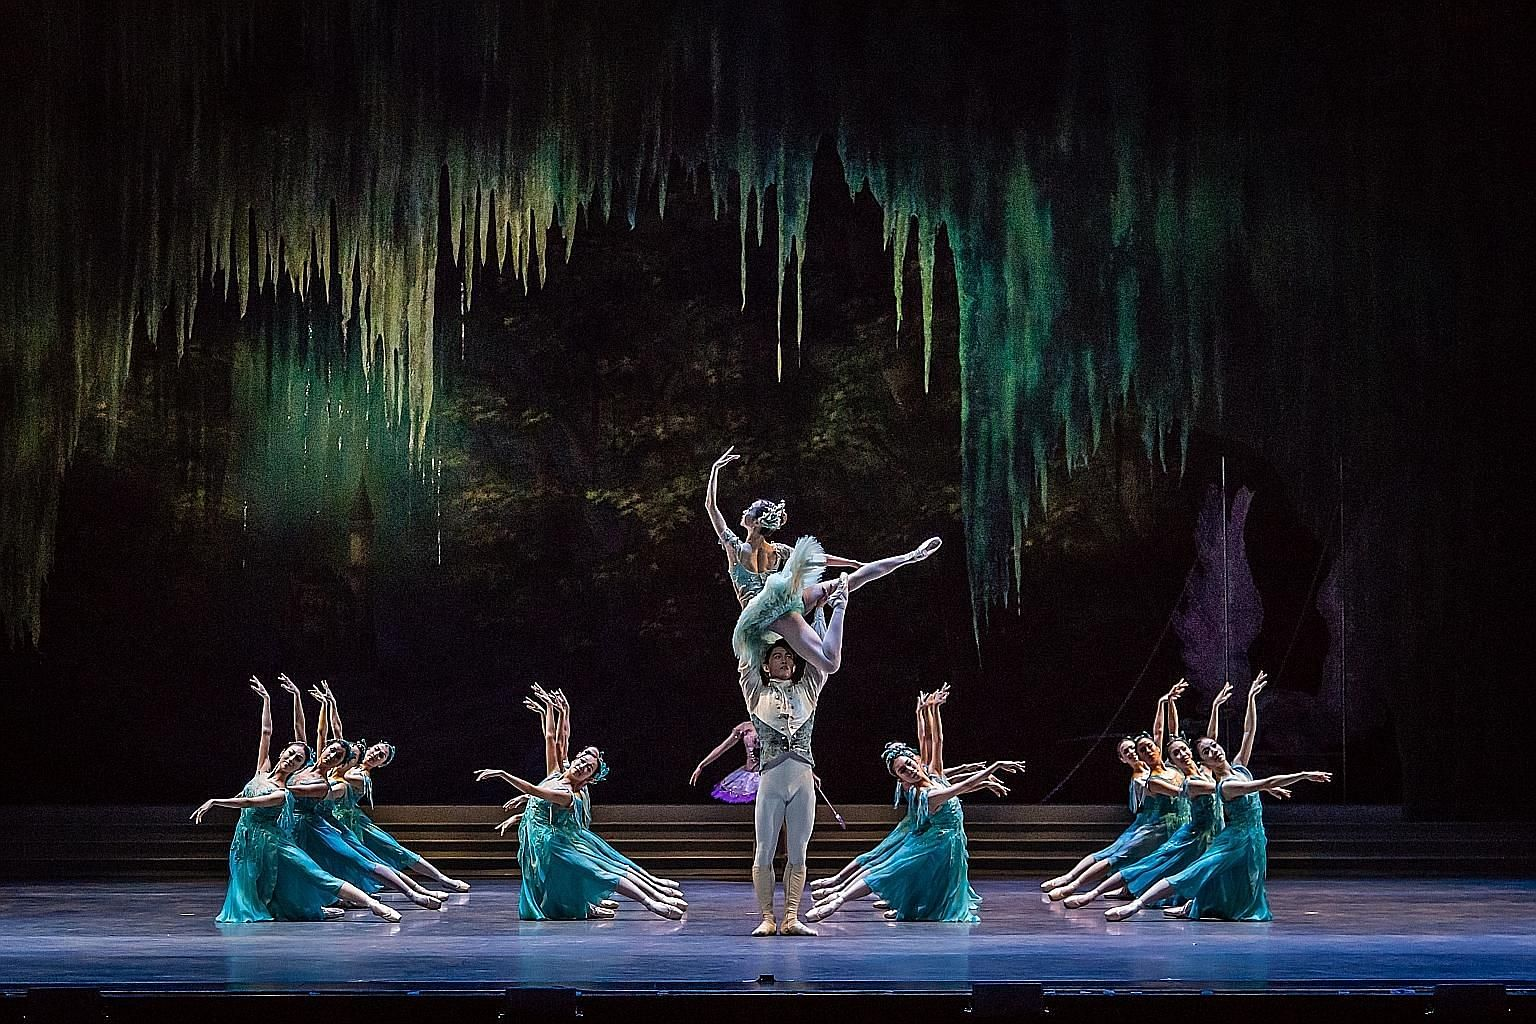 Singapore Dance Theatre's Sleeping Beauty will be performed to live music from the Metropolitan Festival Orchestra.